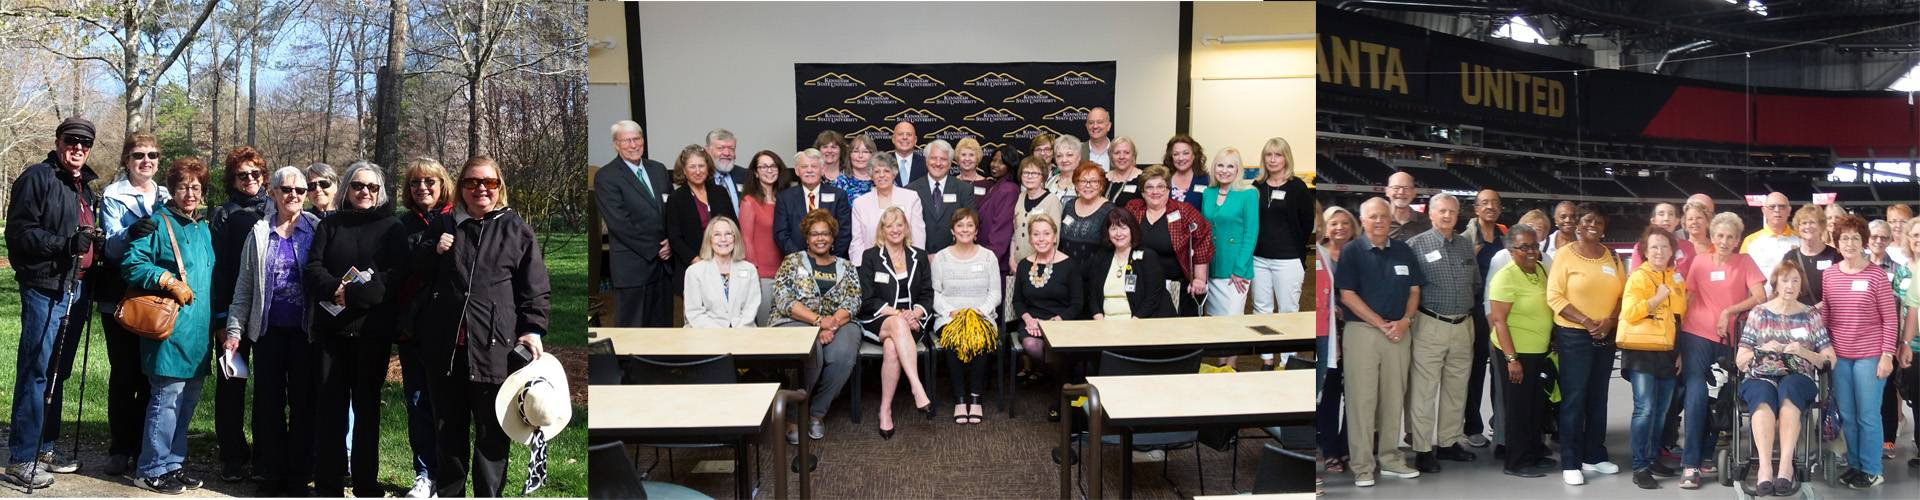 group photos of retiree events